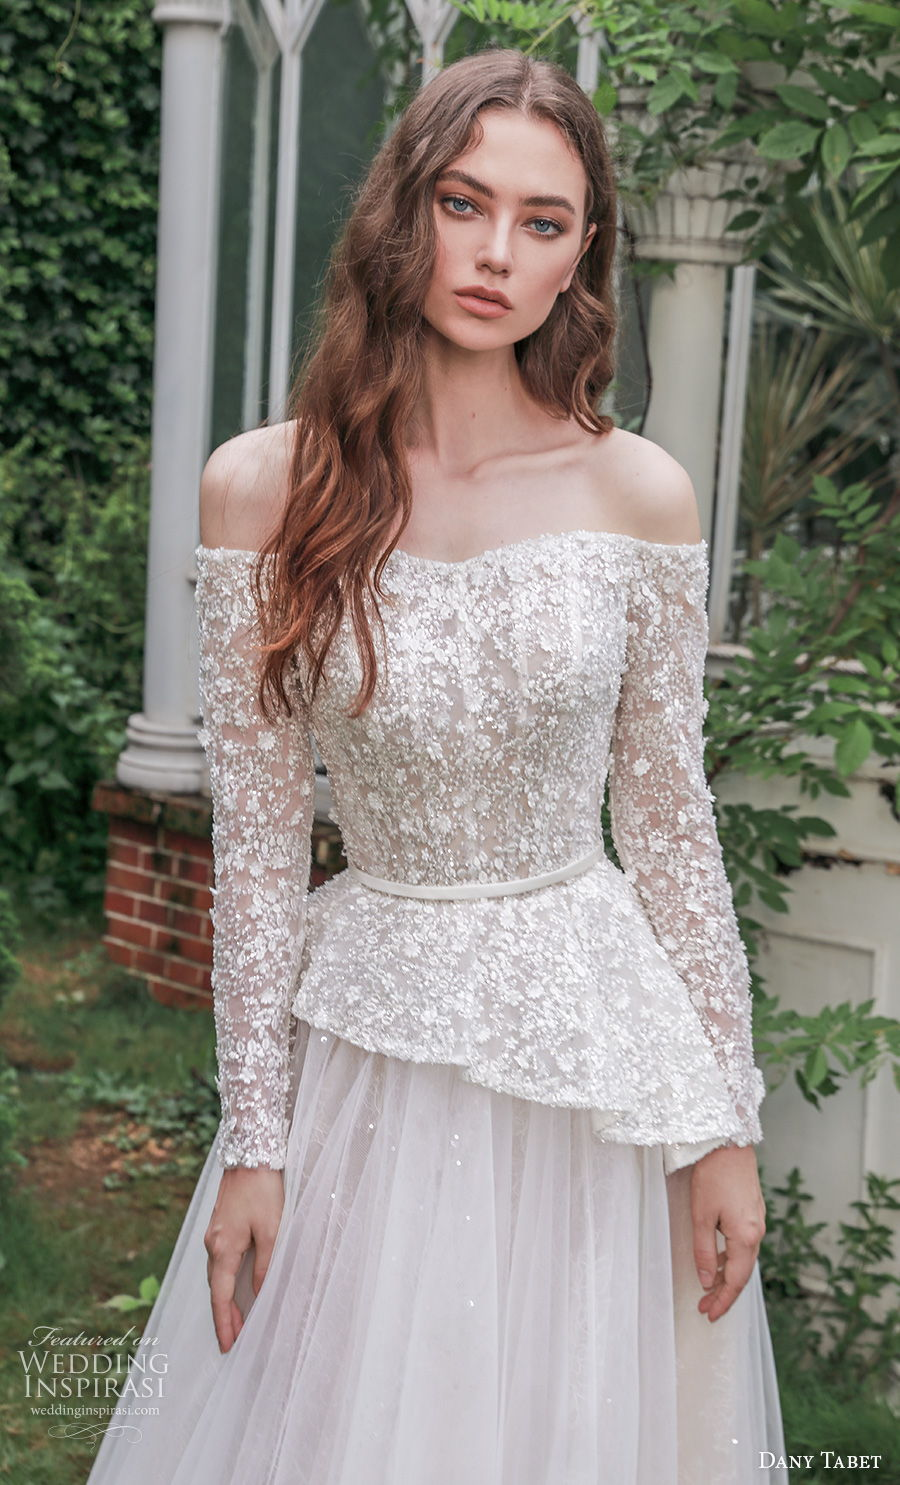 dany tabet 2021 emerge bridal long sleeves off the shoulder heavily embellished bodice peplum romantic a  line wedding dress medium train (3) zv